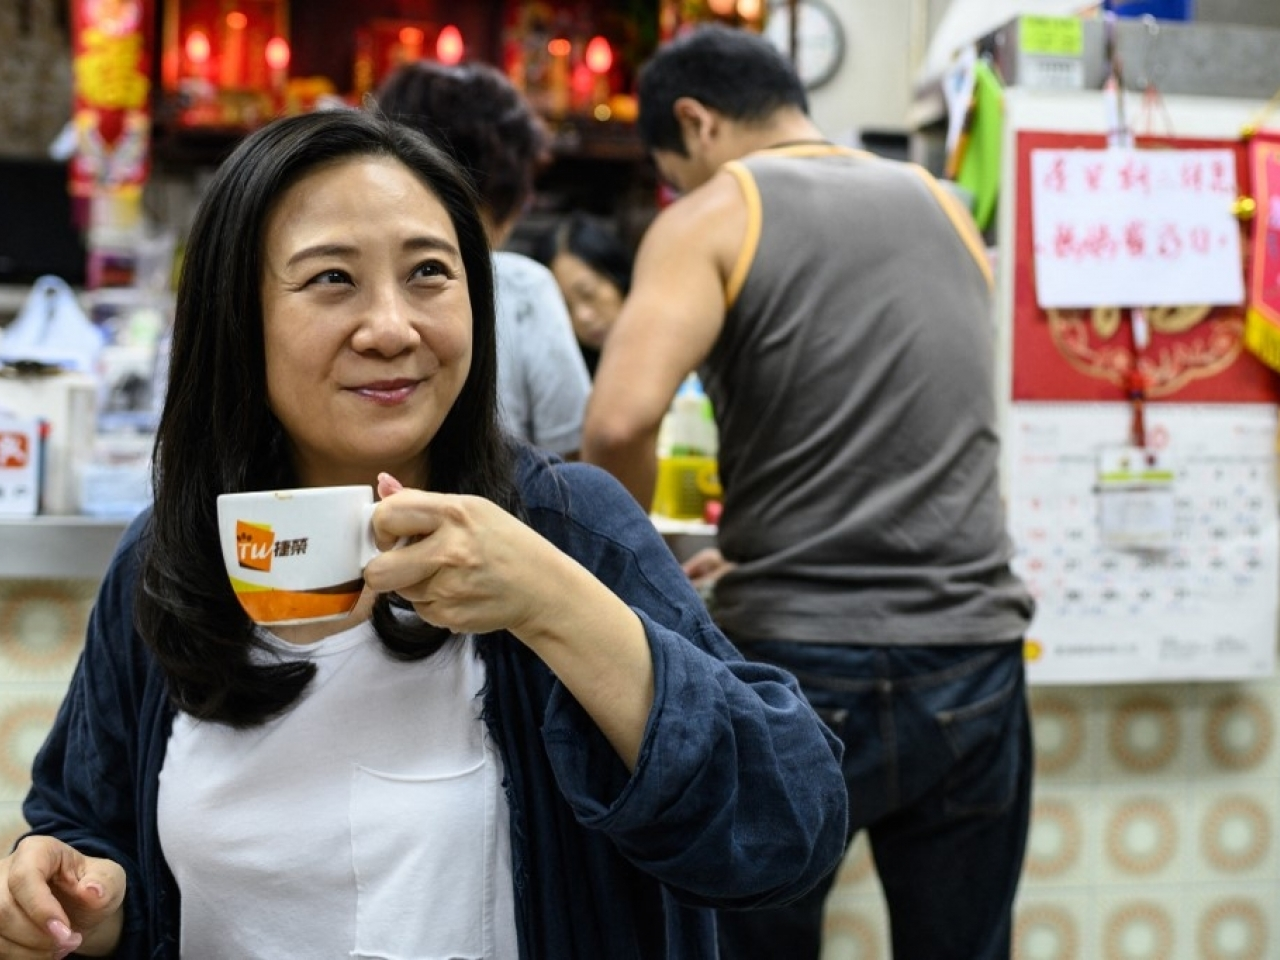 Elizabeth Quat is worried there will be 'unpatriotic' candidates in future elections and the public may vote for them. File photo: AFP